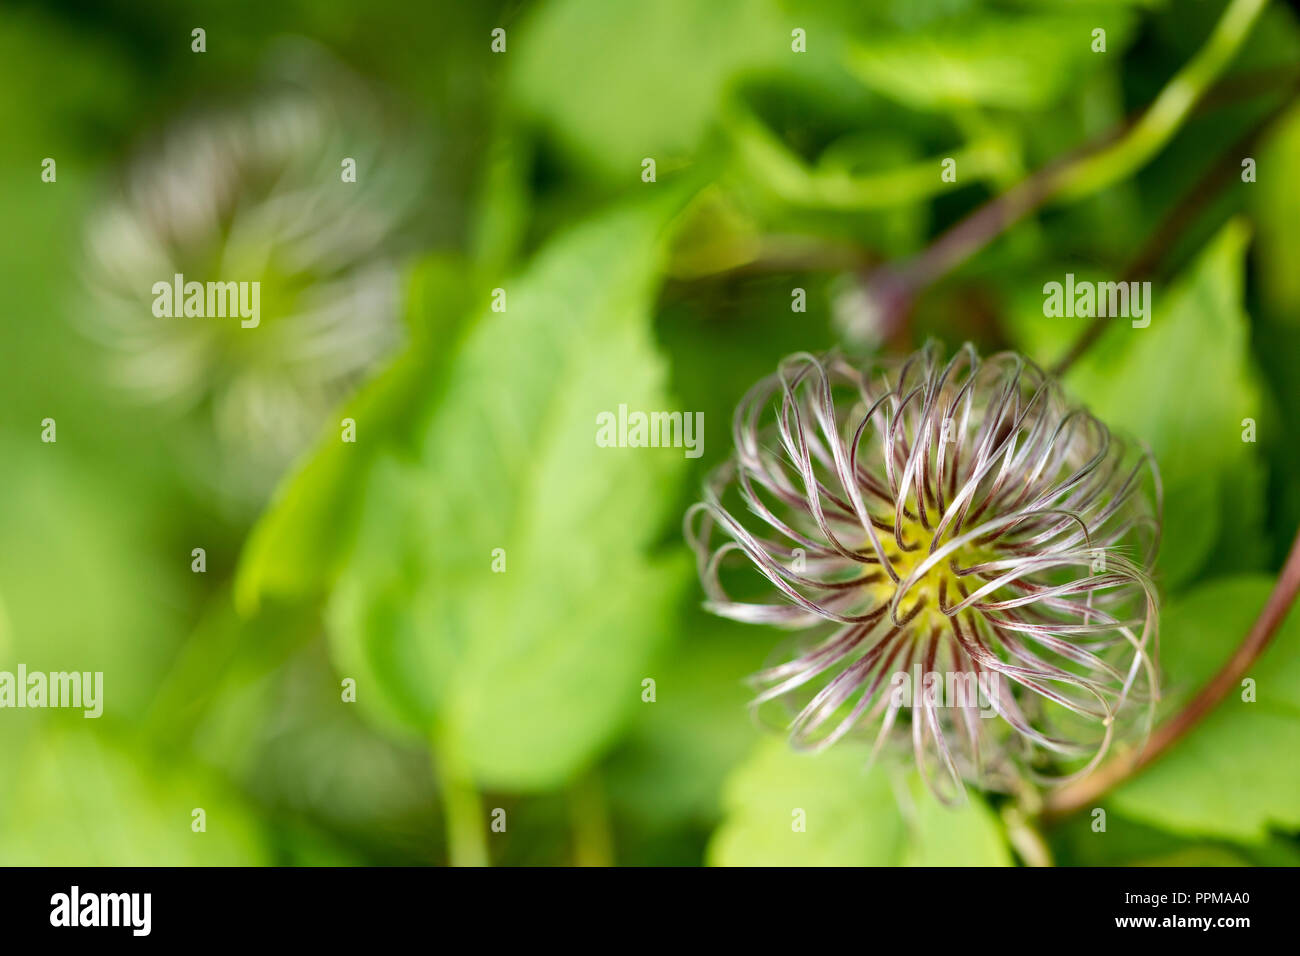 A hairy plant Clematis amongst green leaves - Stock Image